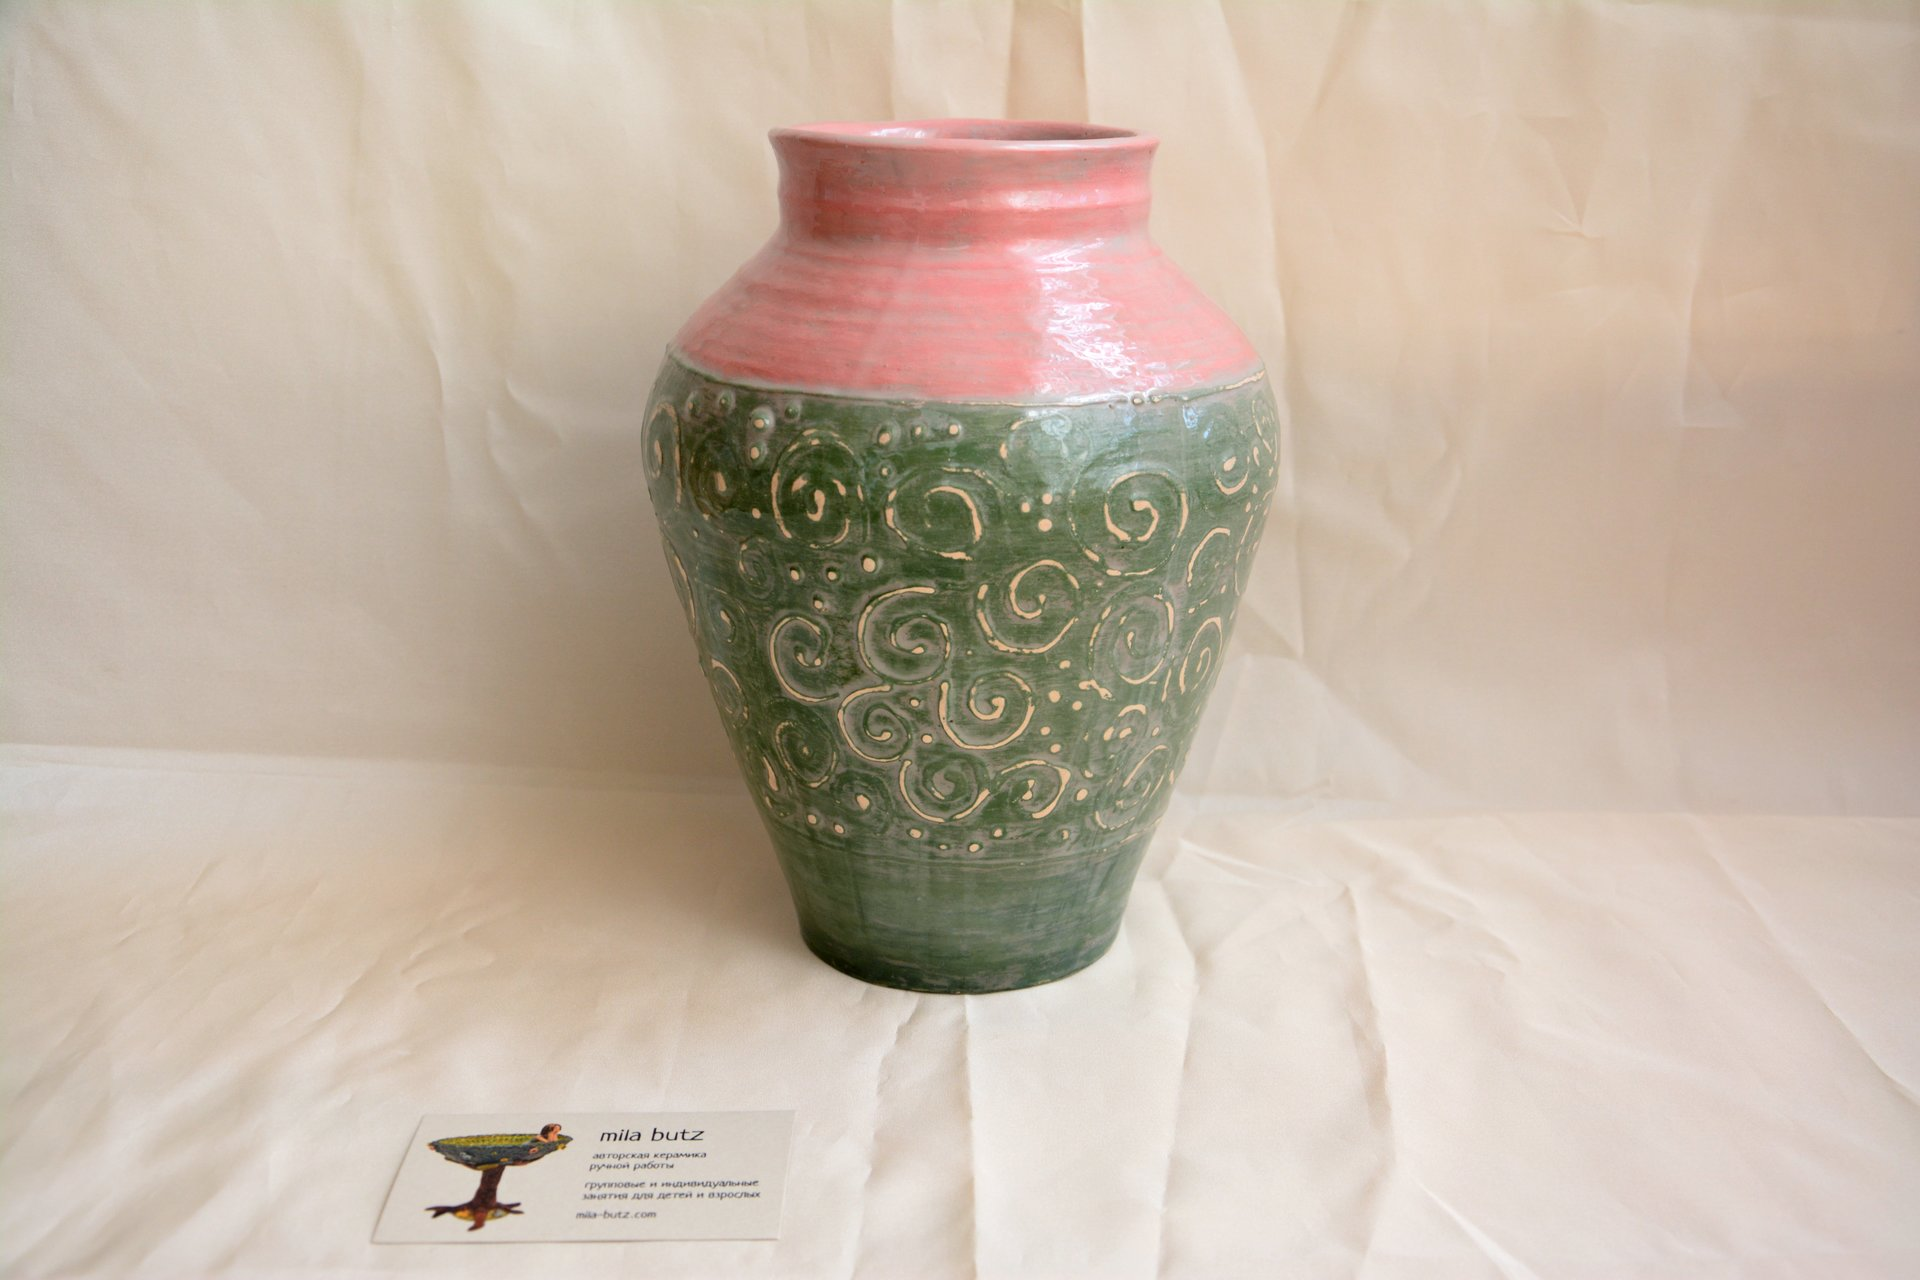 Classic vase Green patinated, height - 23 cm, photo 2 of 3.